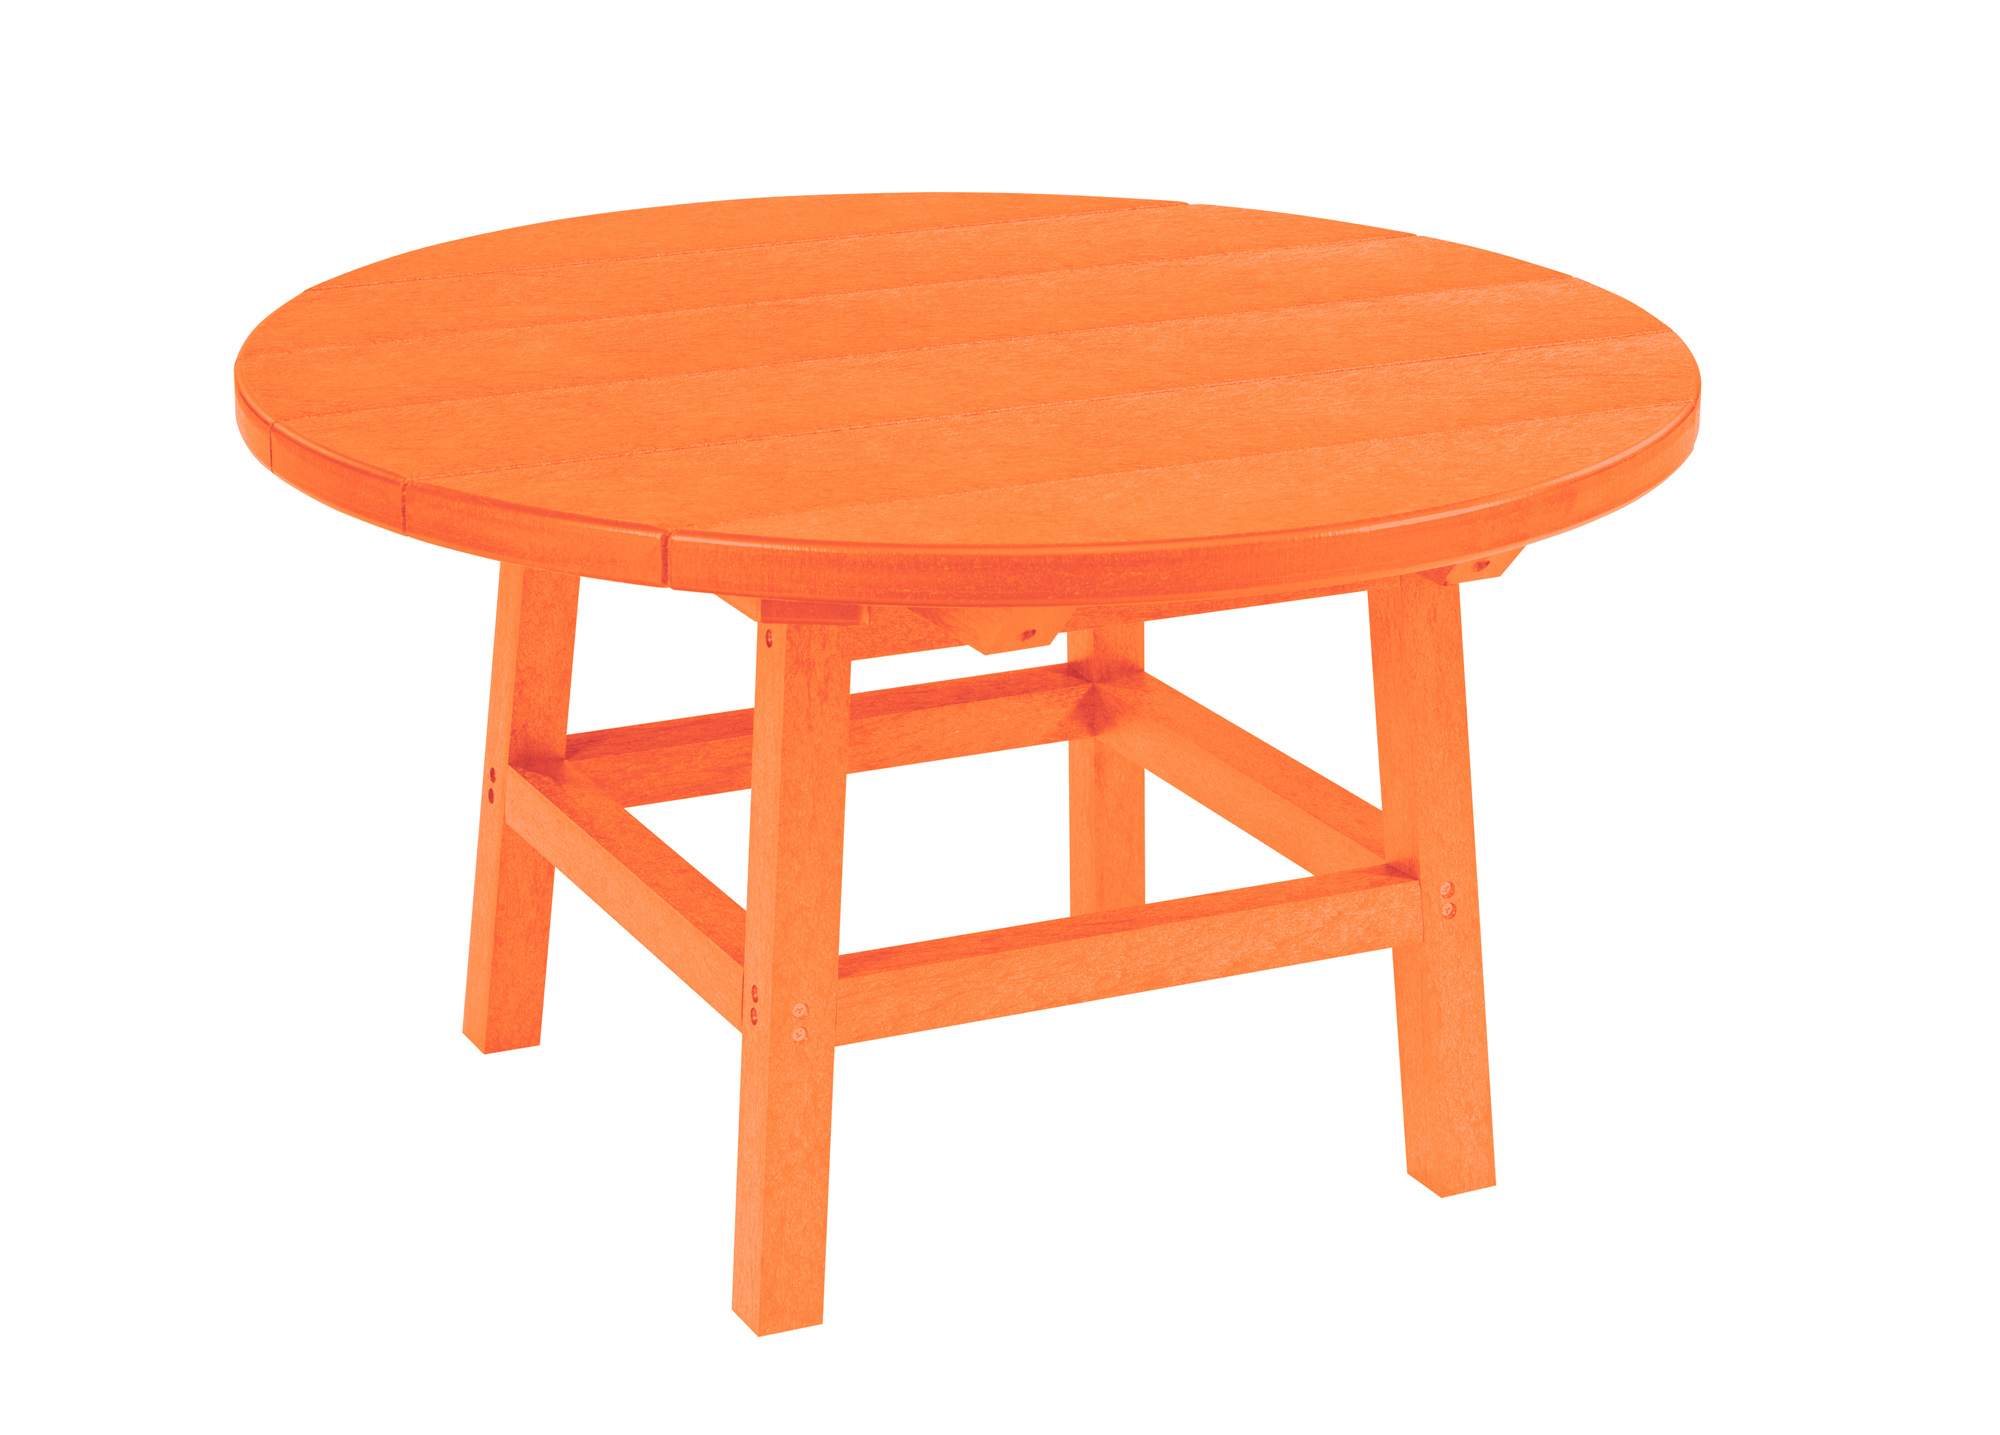 32 Round Cocktail Table Cr Plastic Products Home Gallery